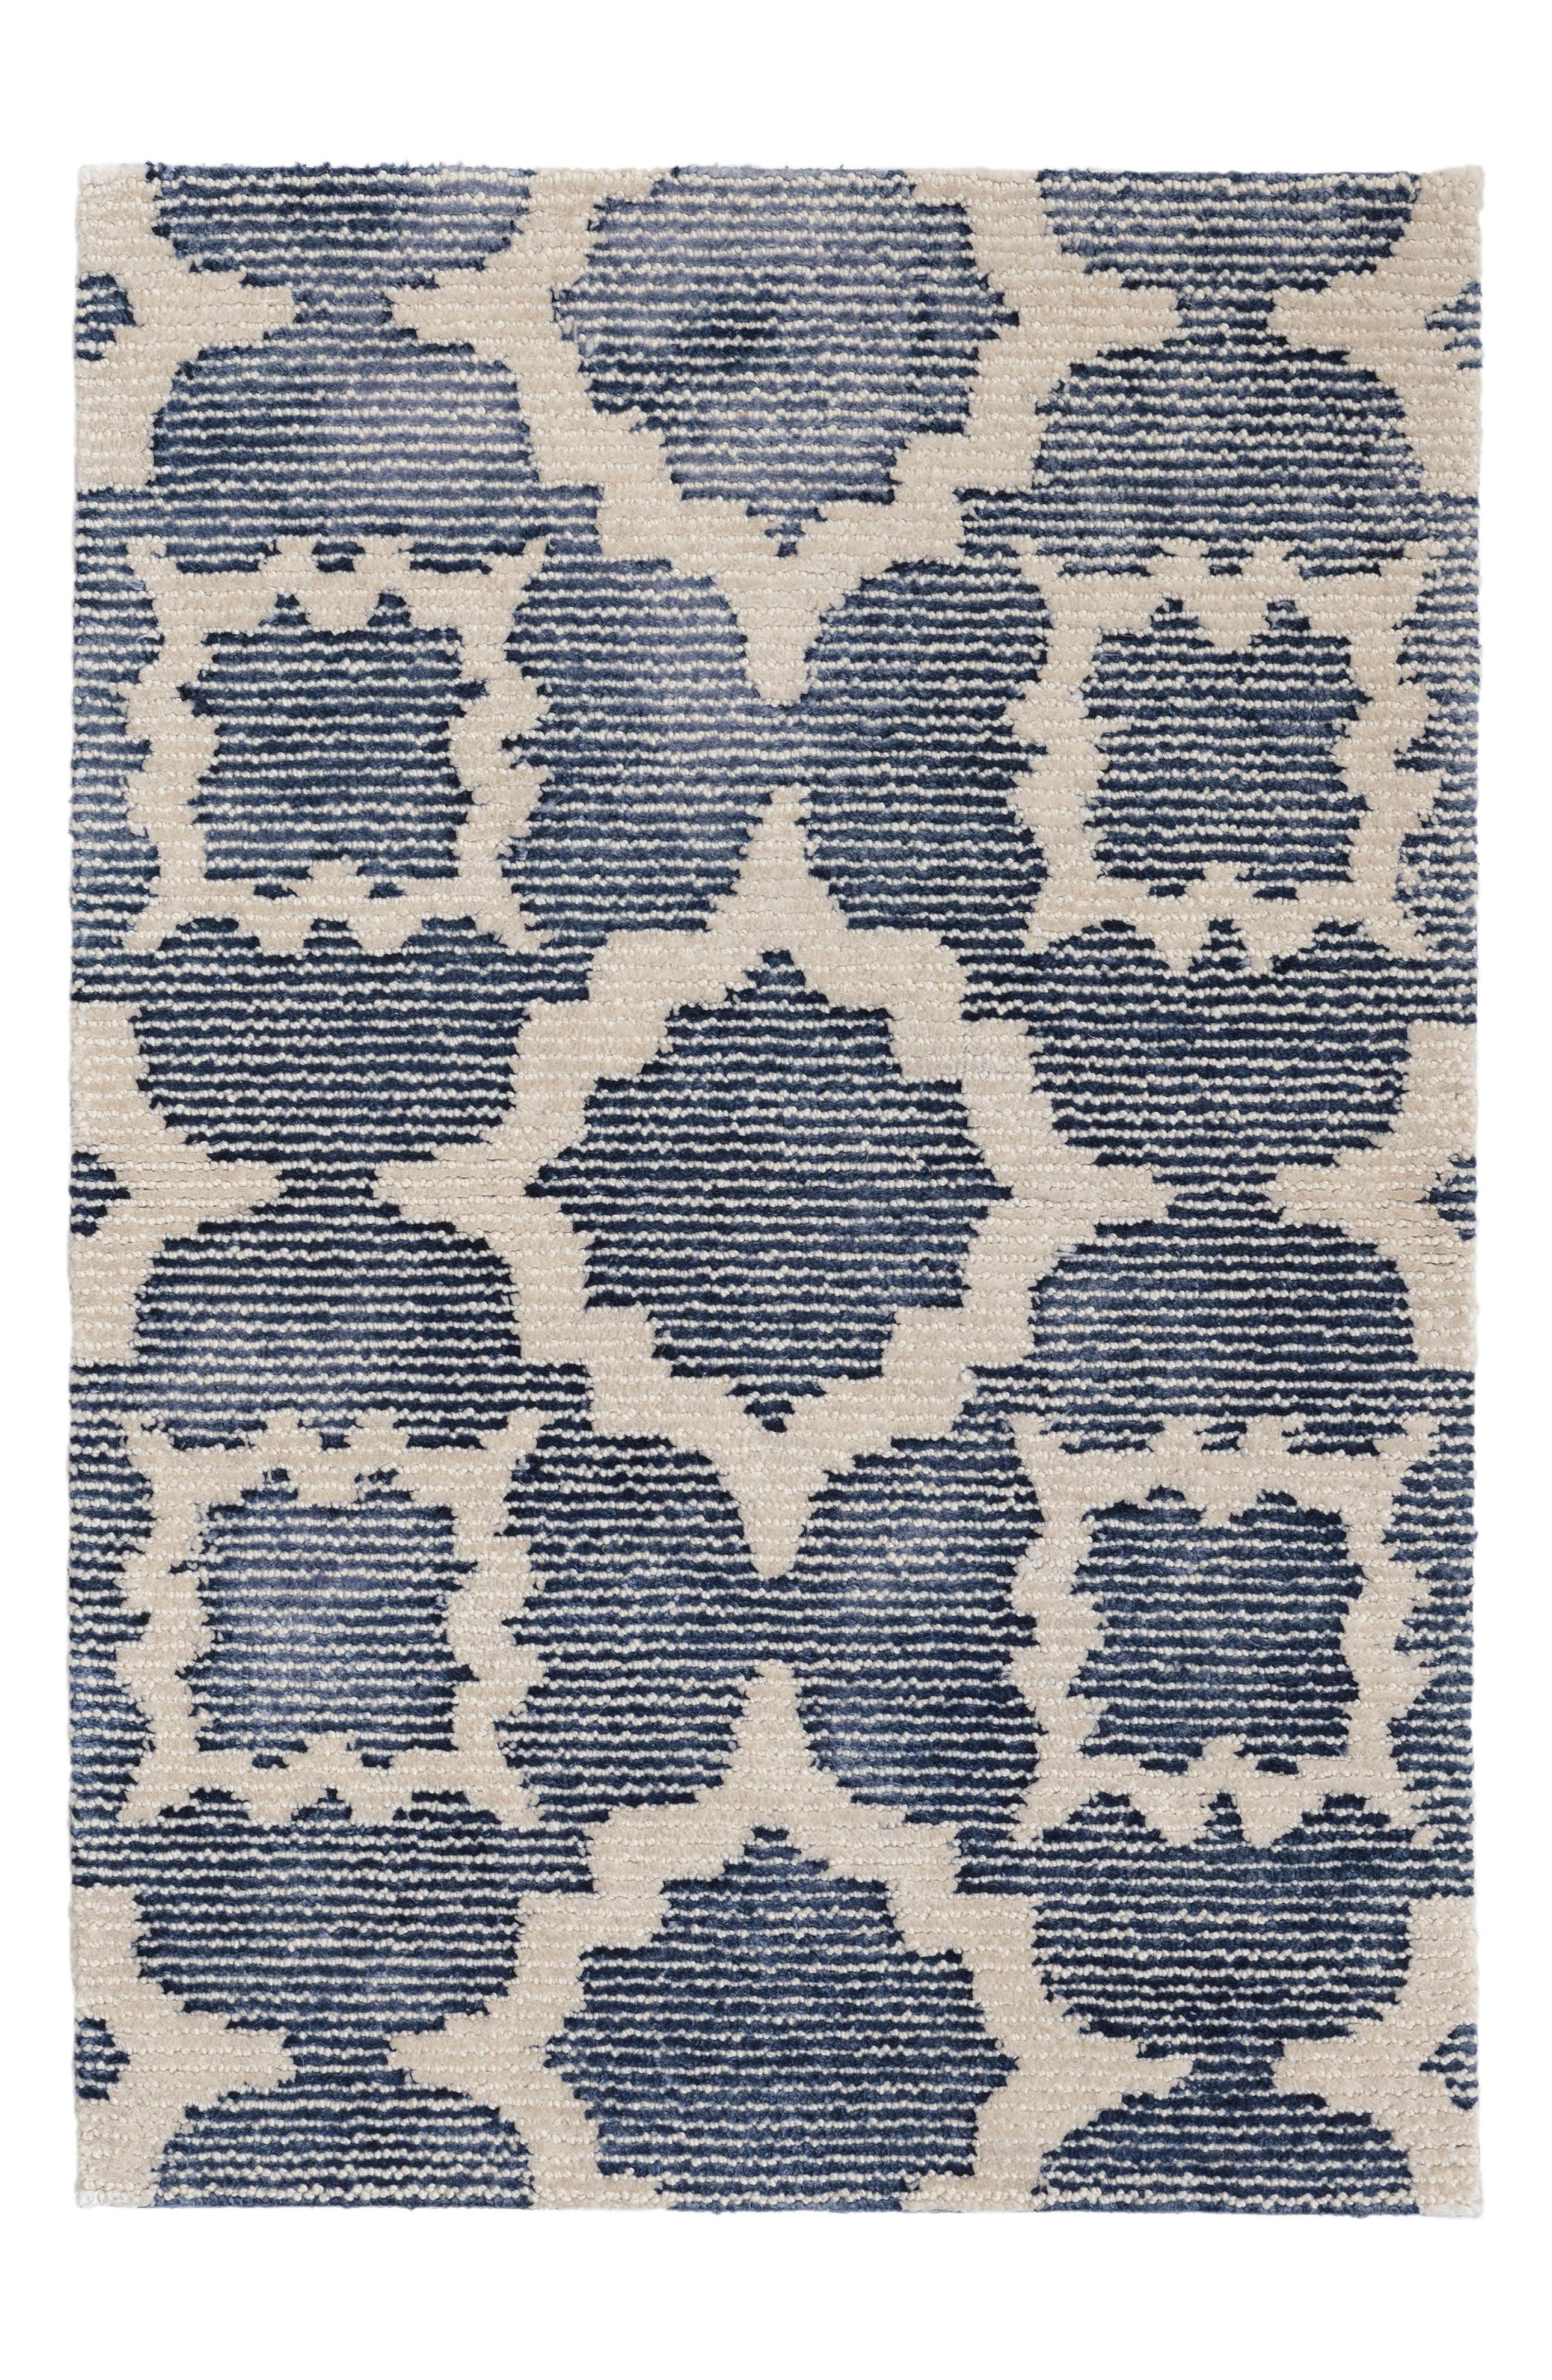 China Hand Knotted Wool Blend Rug,                         Main,                         color, Blue